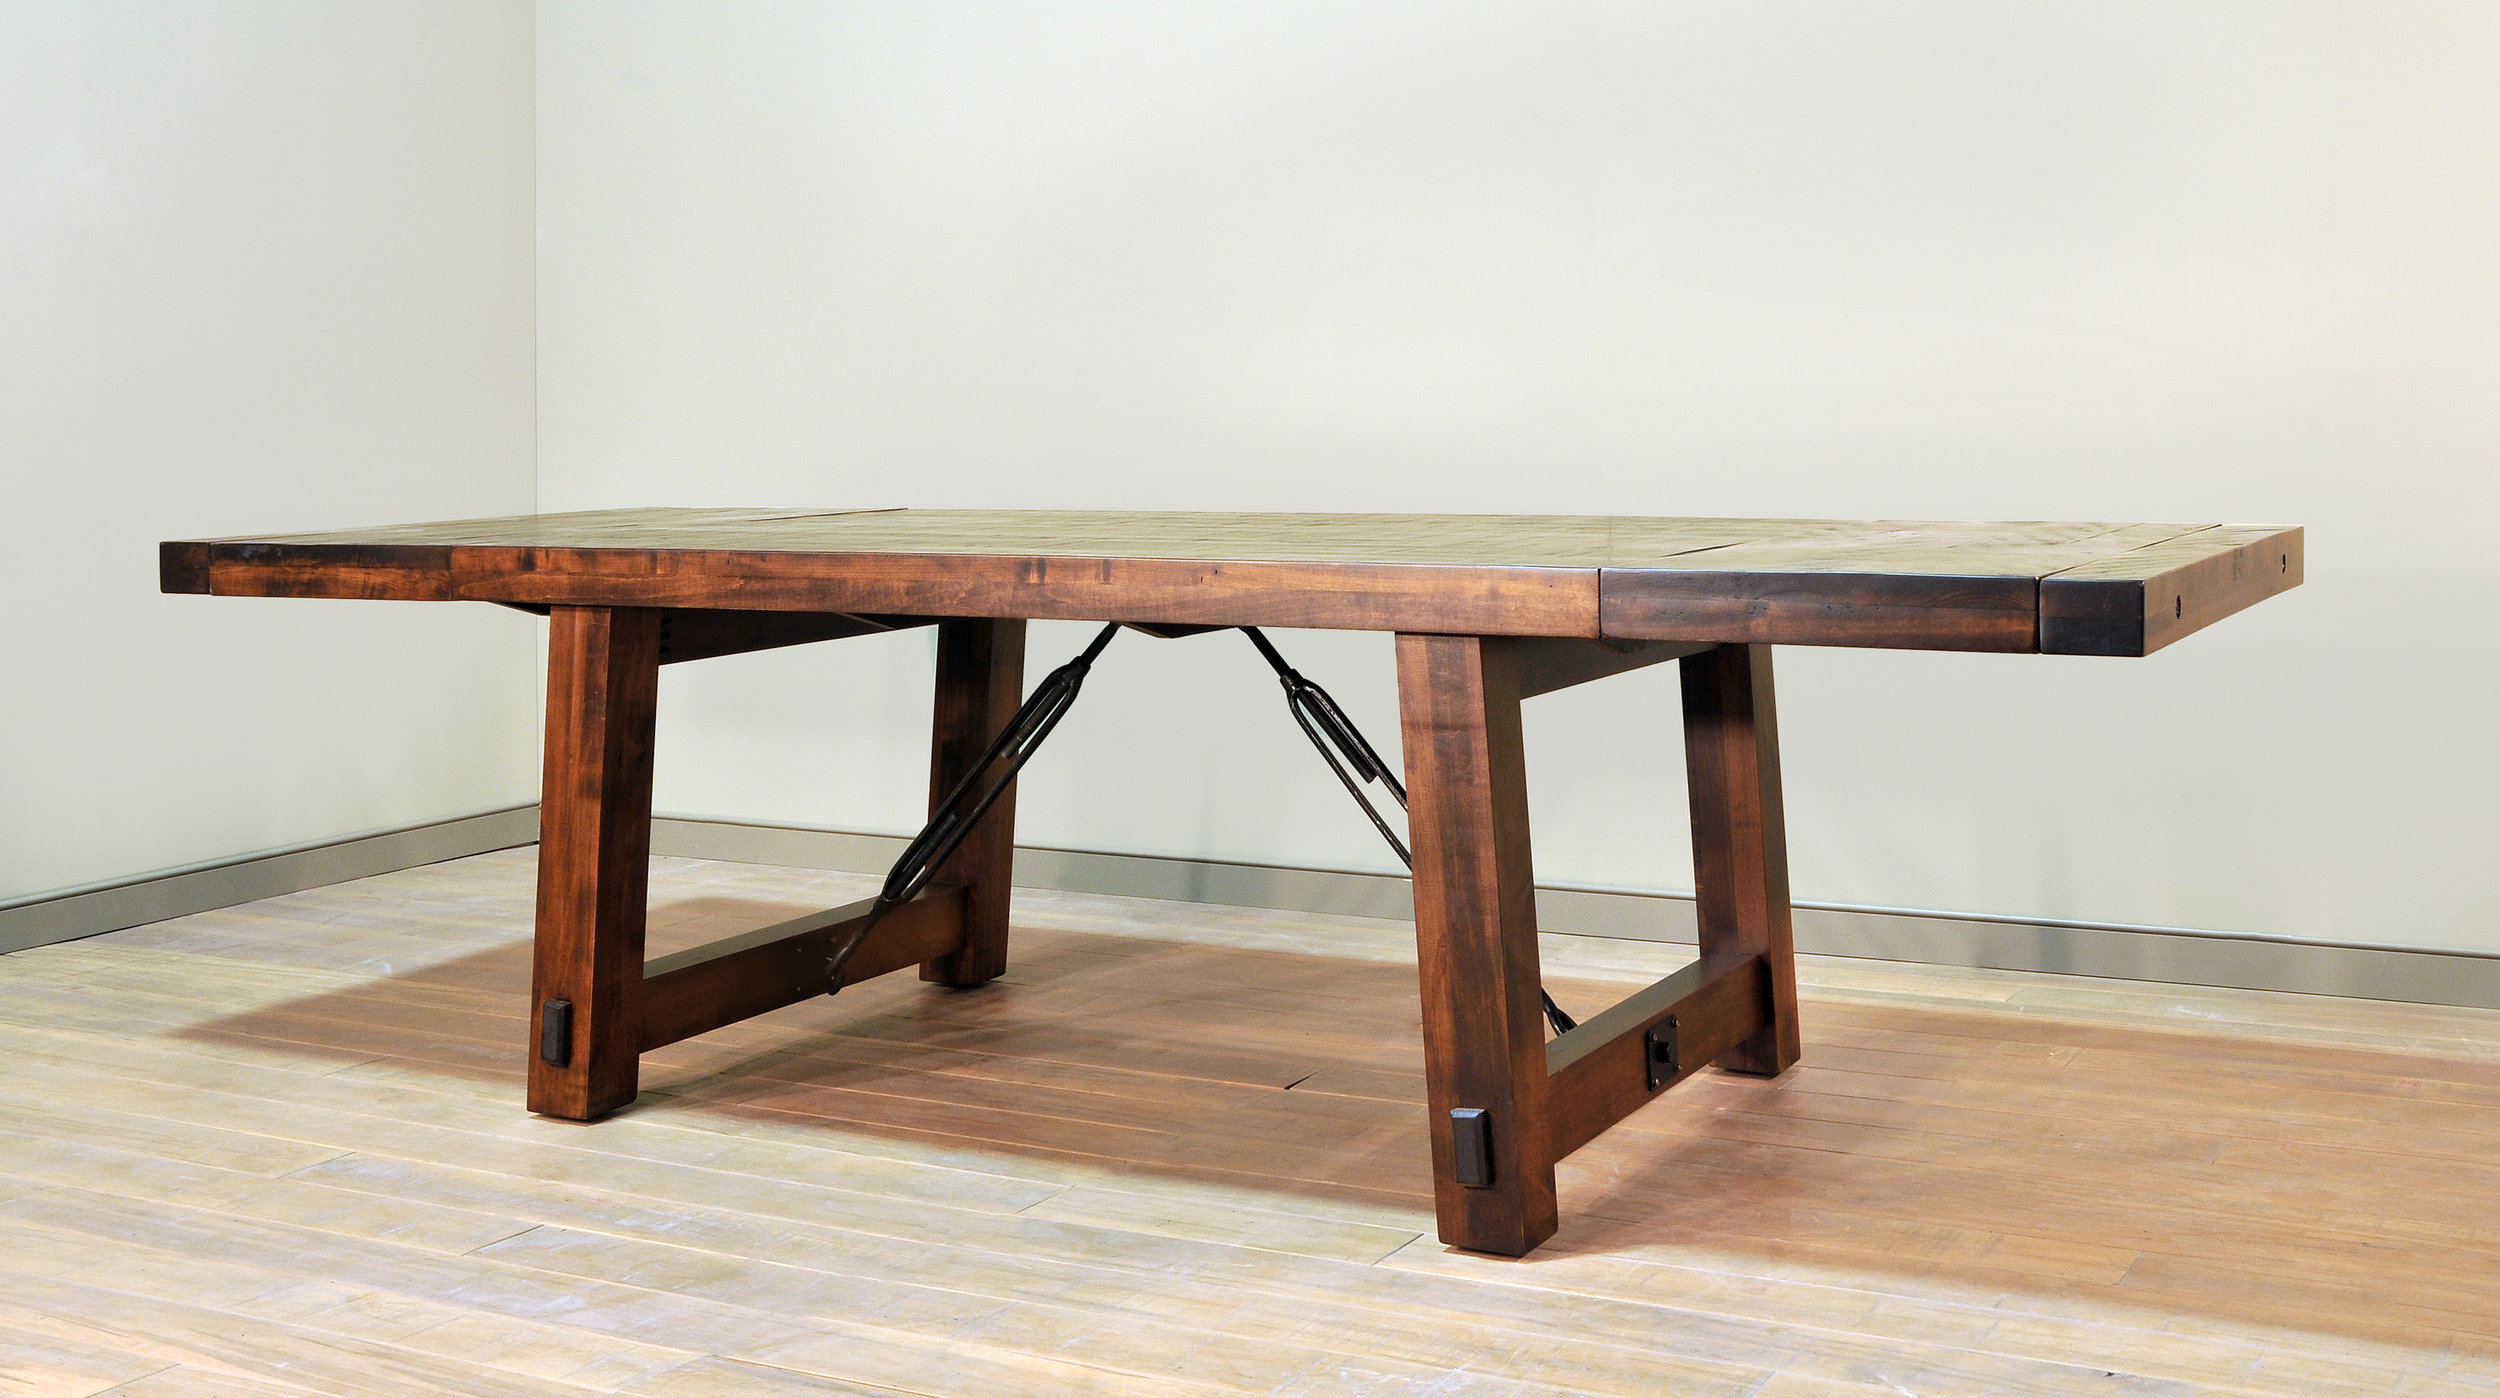 Benchmark table for sale in Ohio